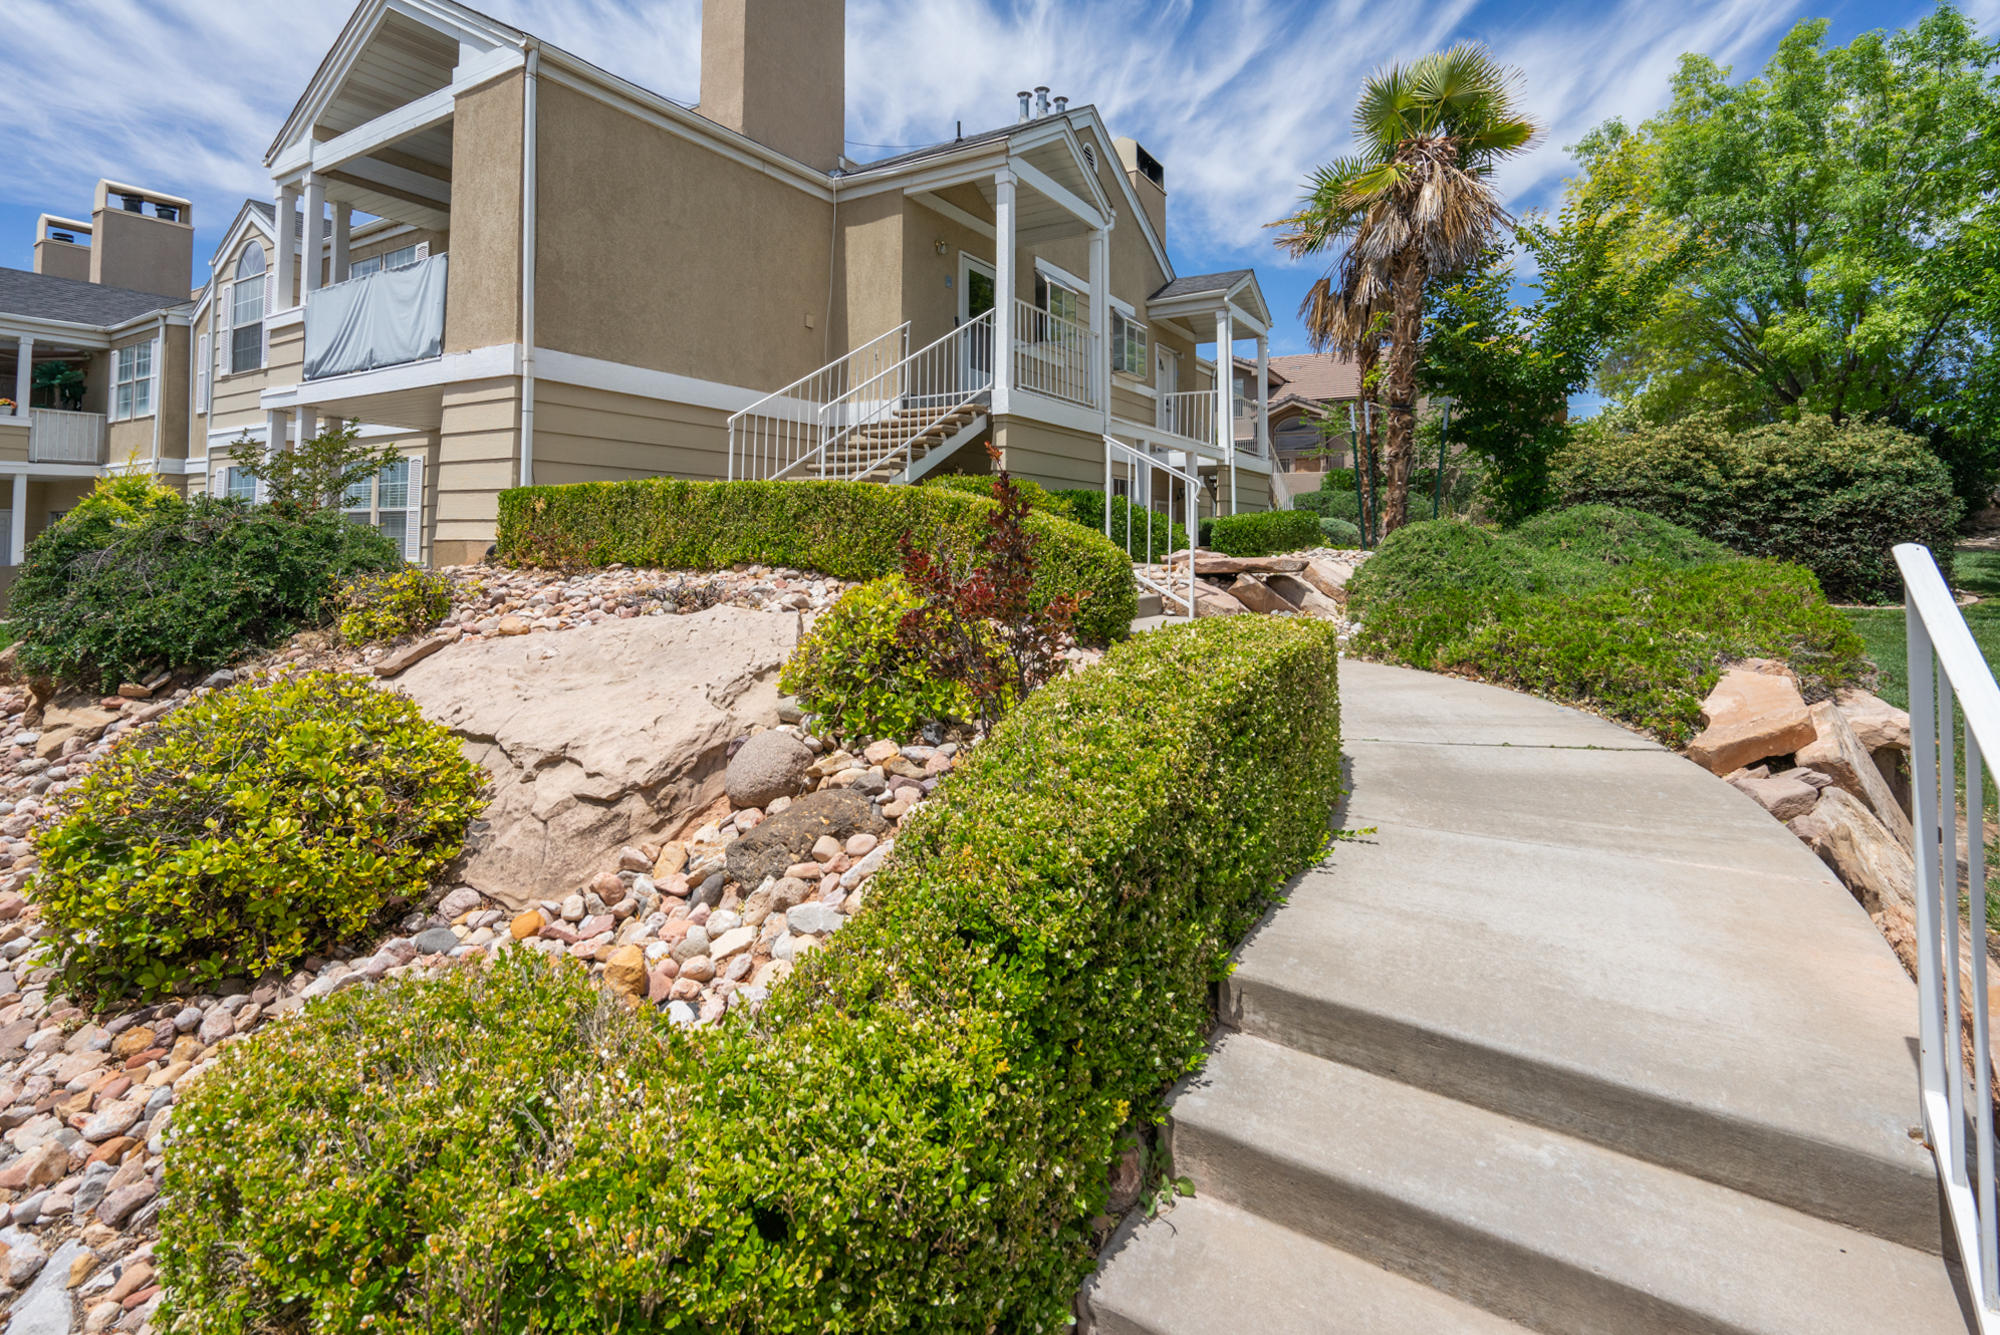 345 N 2450 W Unit 133, St George Ut 84790